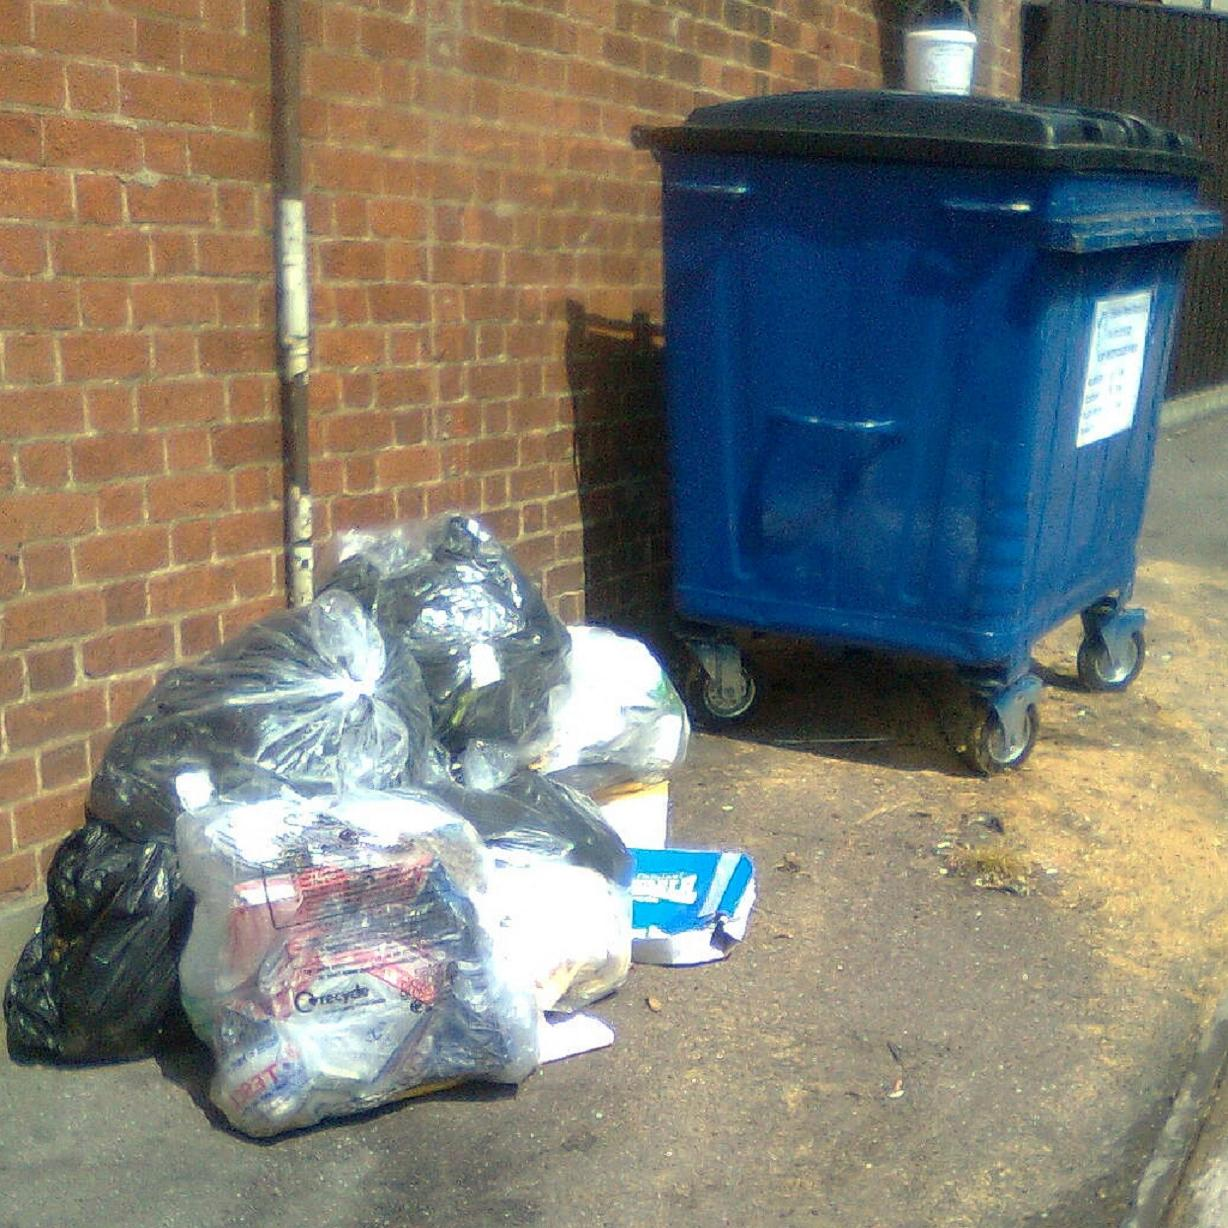 A woman has been fined after fly tipping in Upshire